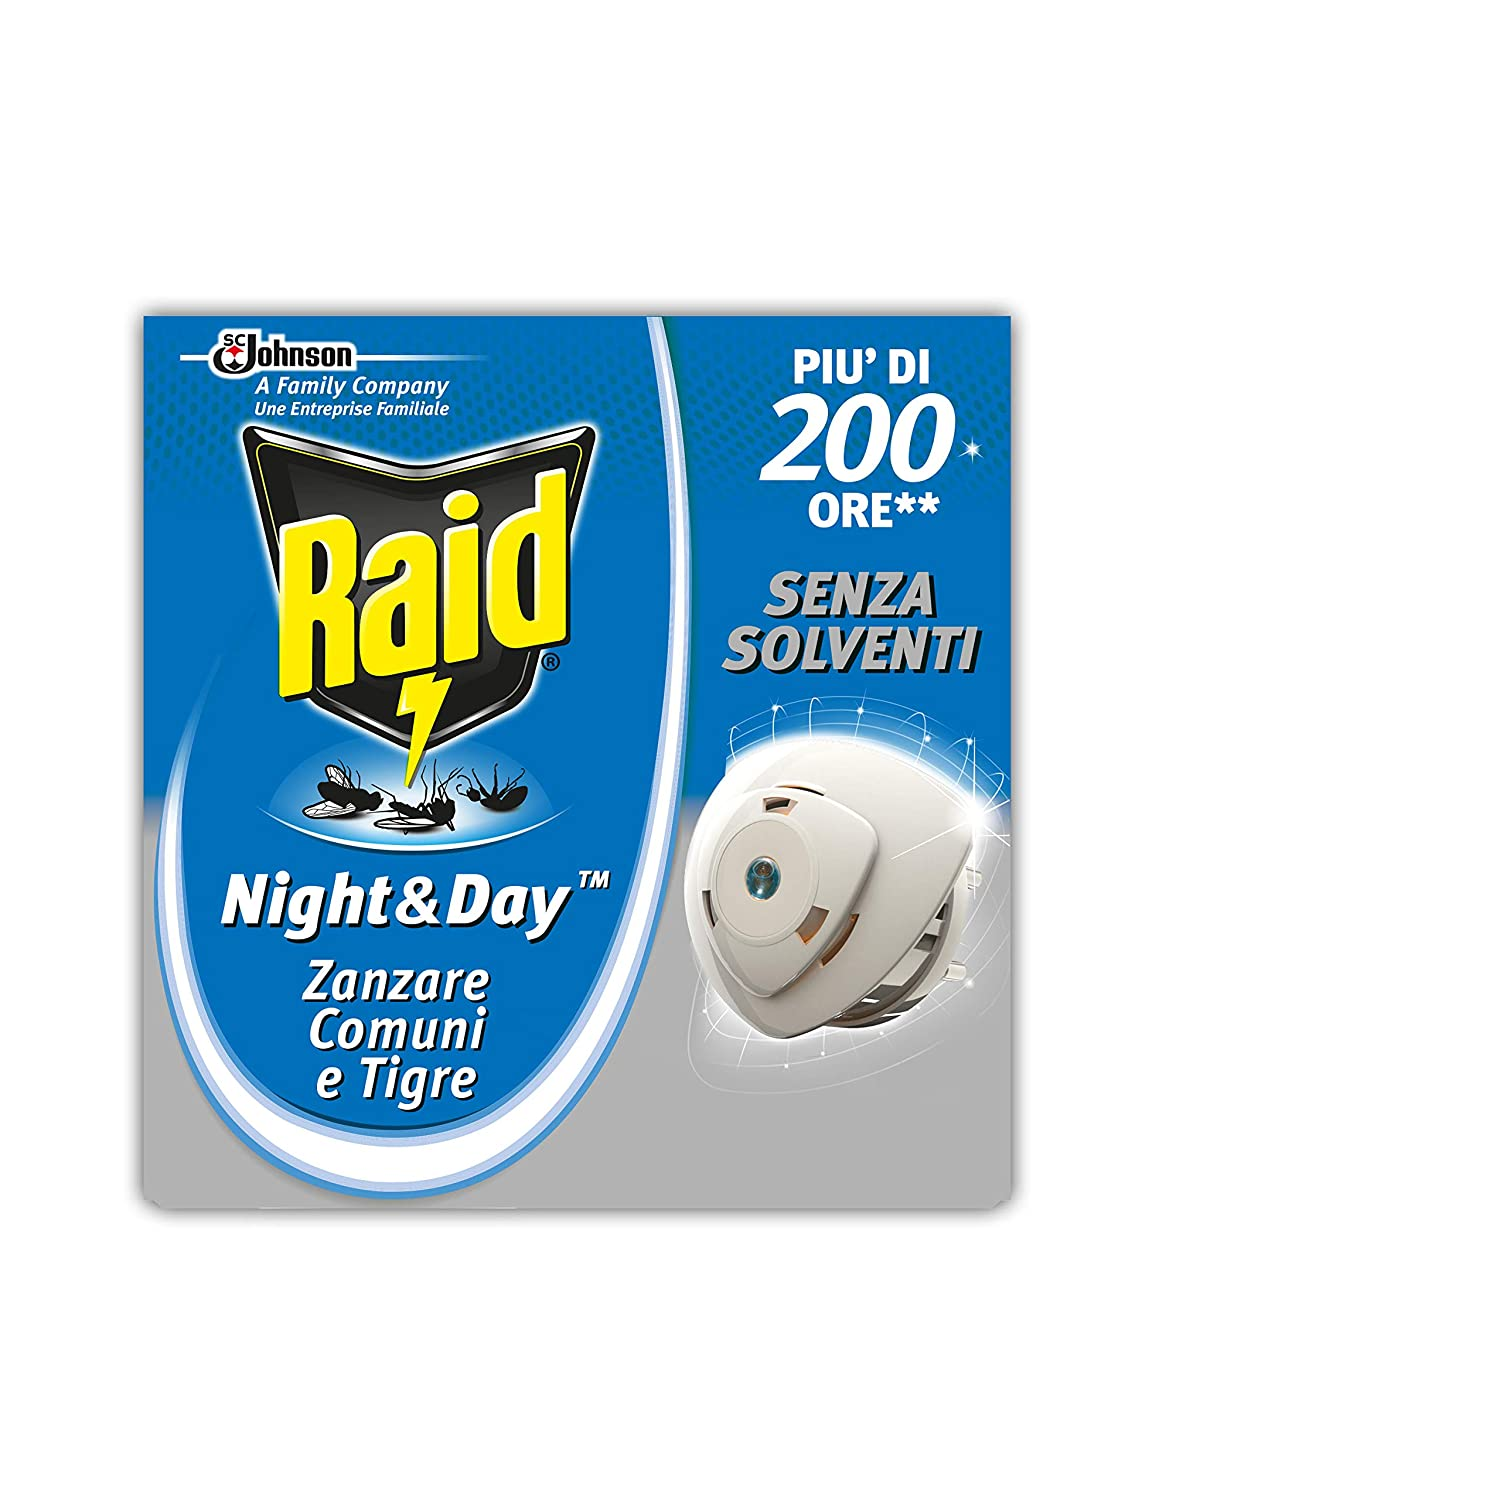 Raid Night & Day Zanzare Ricarica N/A